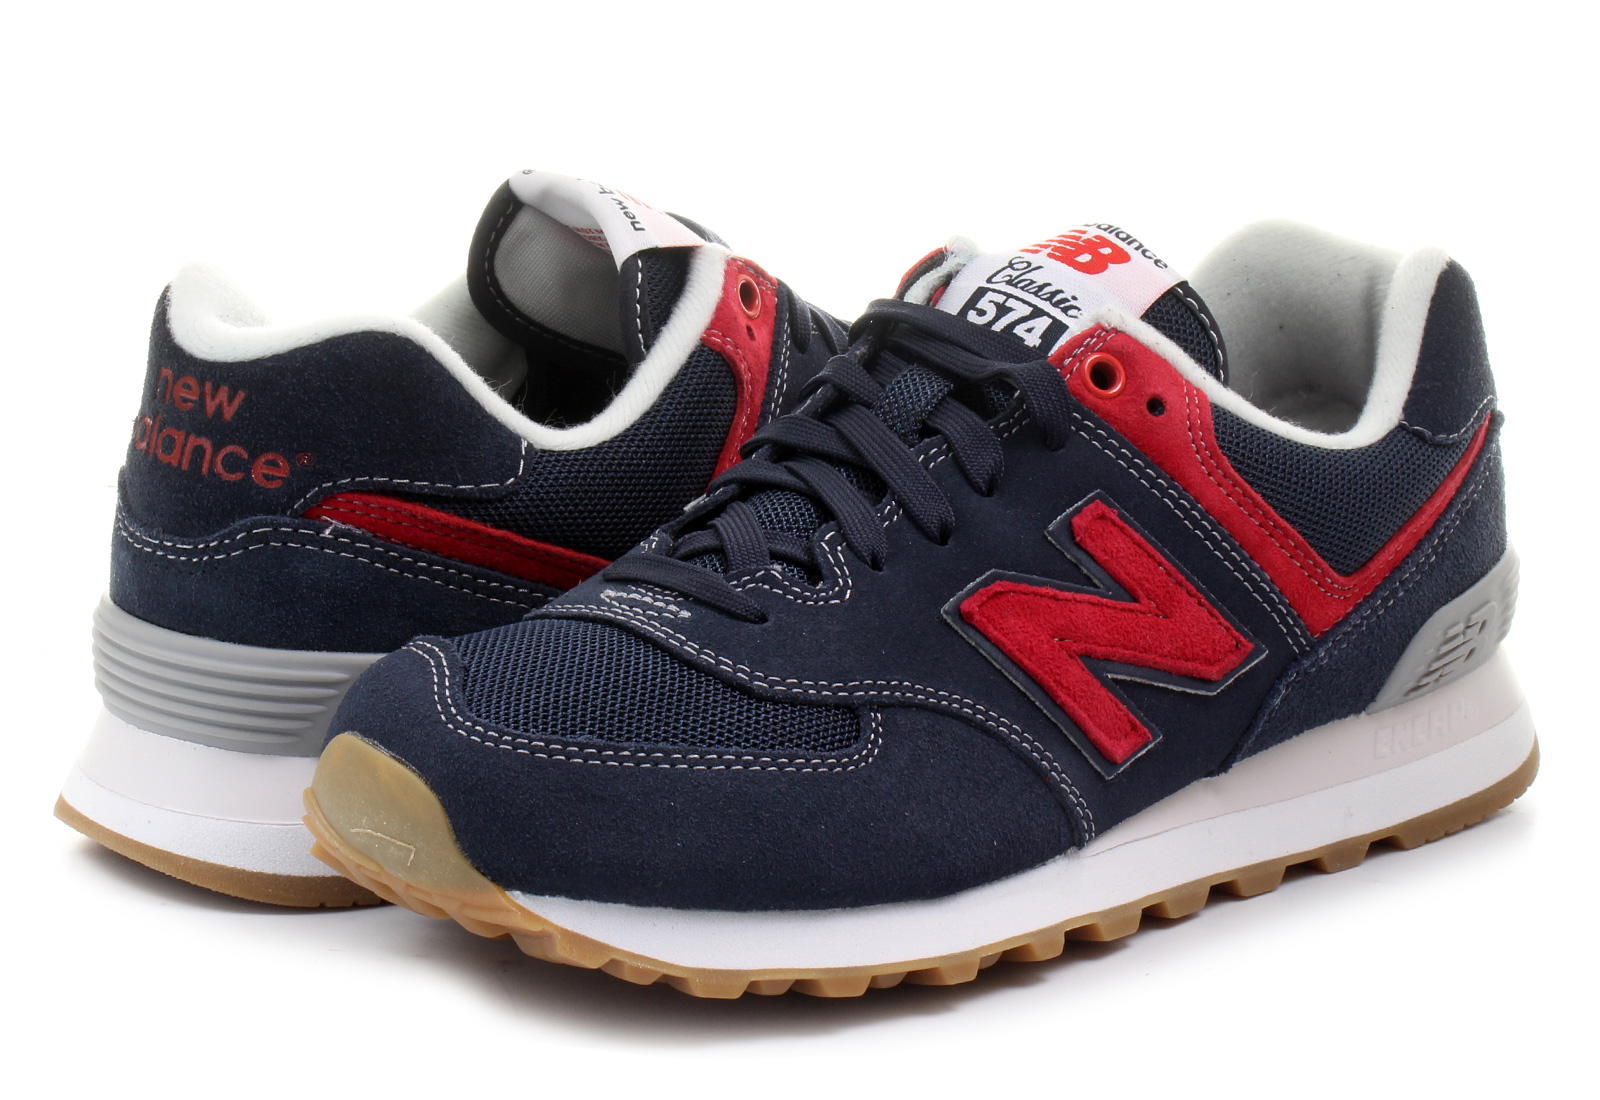 new balance shoes ml574 ml574wdh online shop for sneakers shoes and boots. Black Bedroom Furniture Sets. Home Design Ideas